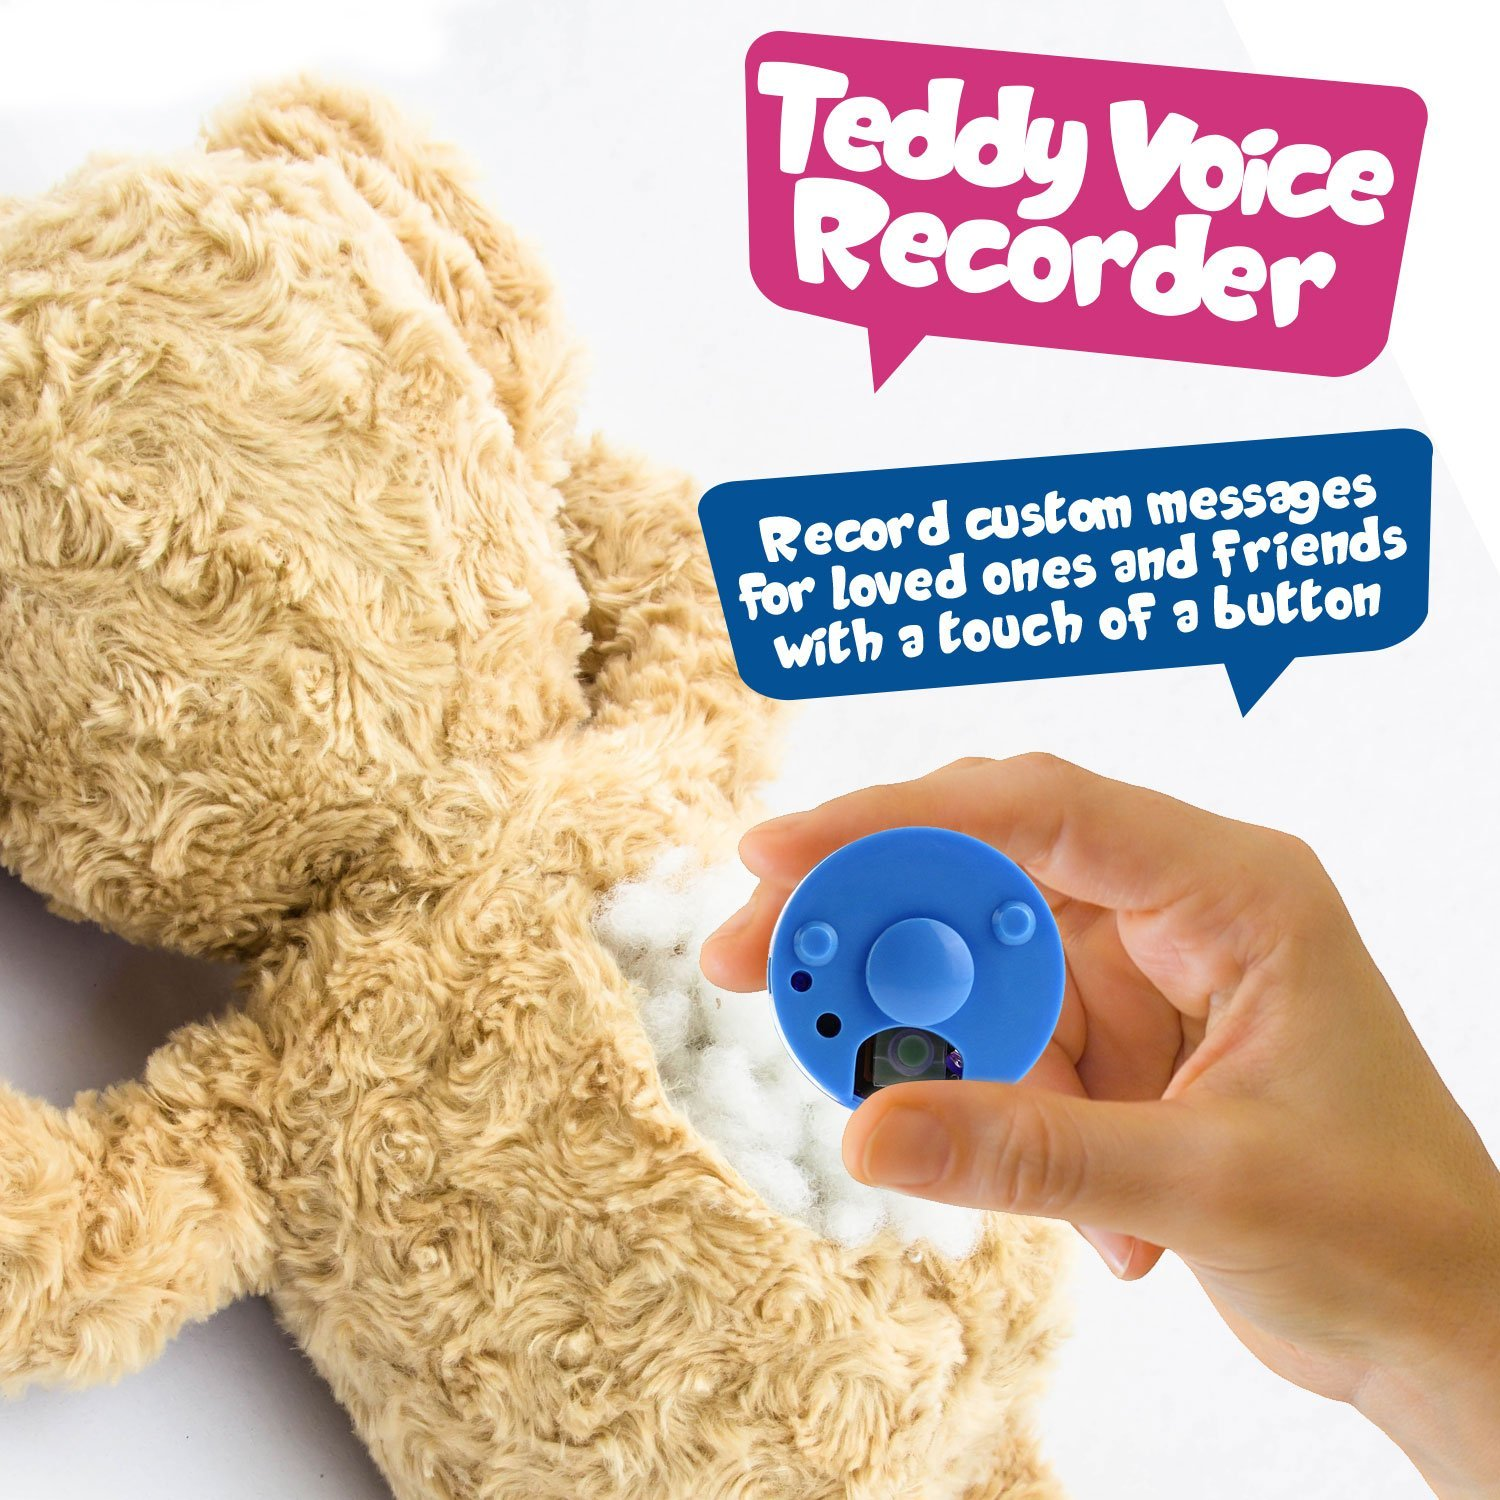 Recordable Teddy Bear Walmart, Voice Sound Recorder Module For Plush Toy Stuffed Teddy Bear Animal Recordable Insert Record Custom Messages 12 Seconds Long 2 Pack Pink Blue By Inventiv Walmart Com Walmart Com